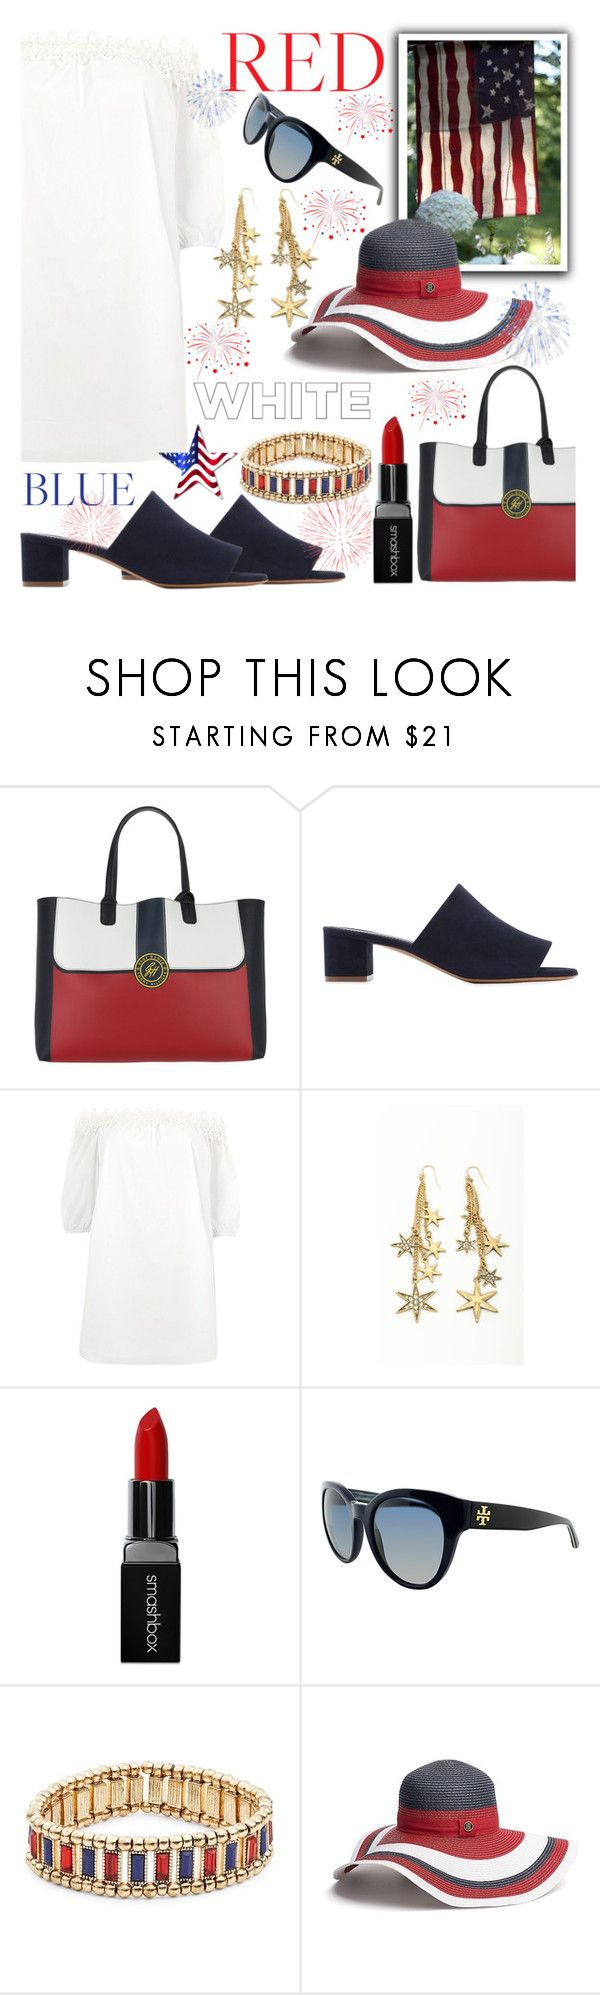 """""""Red, White & Blue: Celebrate the 4th!"""" by the-geek-goddess ❤ liked on Polyvore featuring Tommy Hilfiger, Mansur Gavriel, River Island, Smashbox, Tory Burch and Robert Rose"""